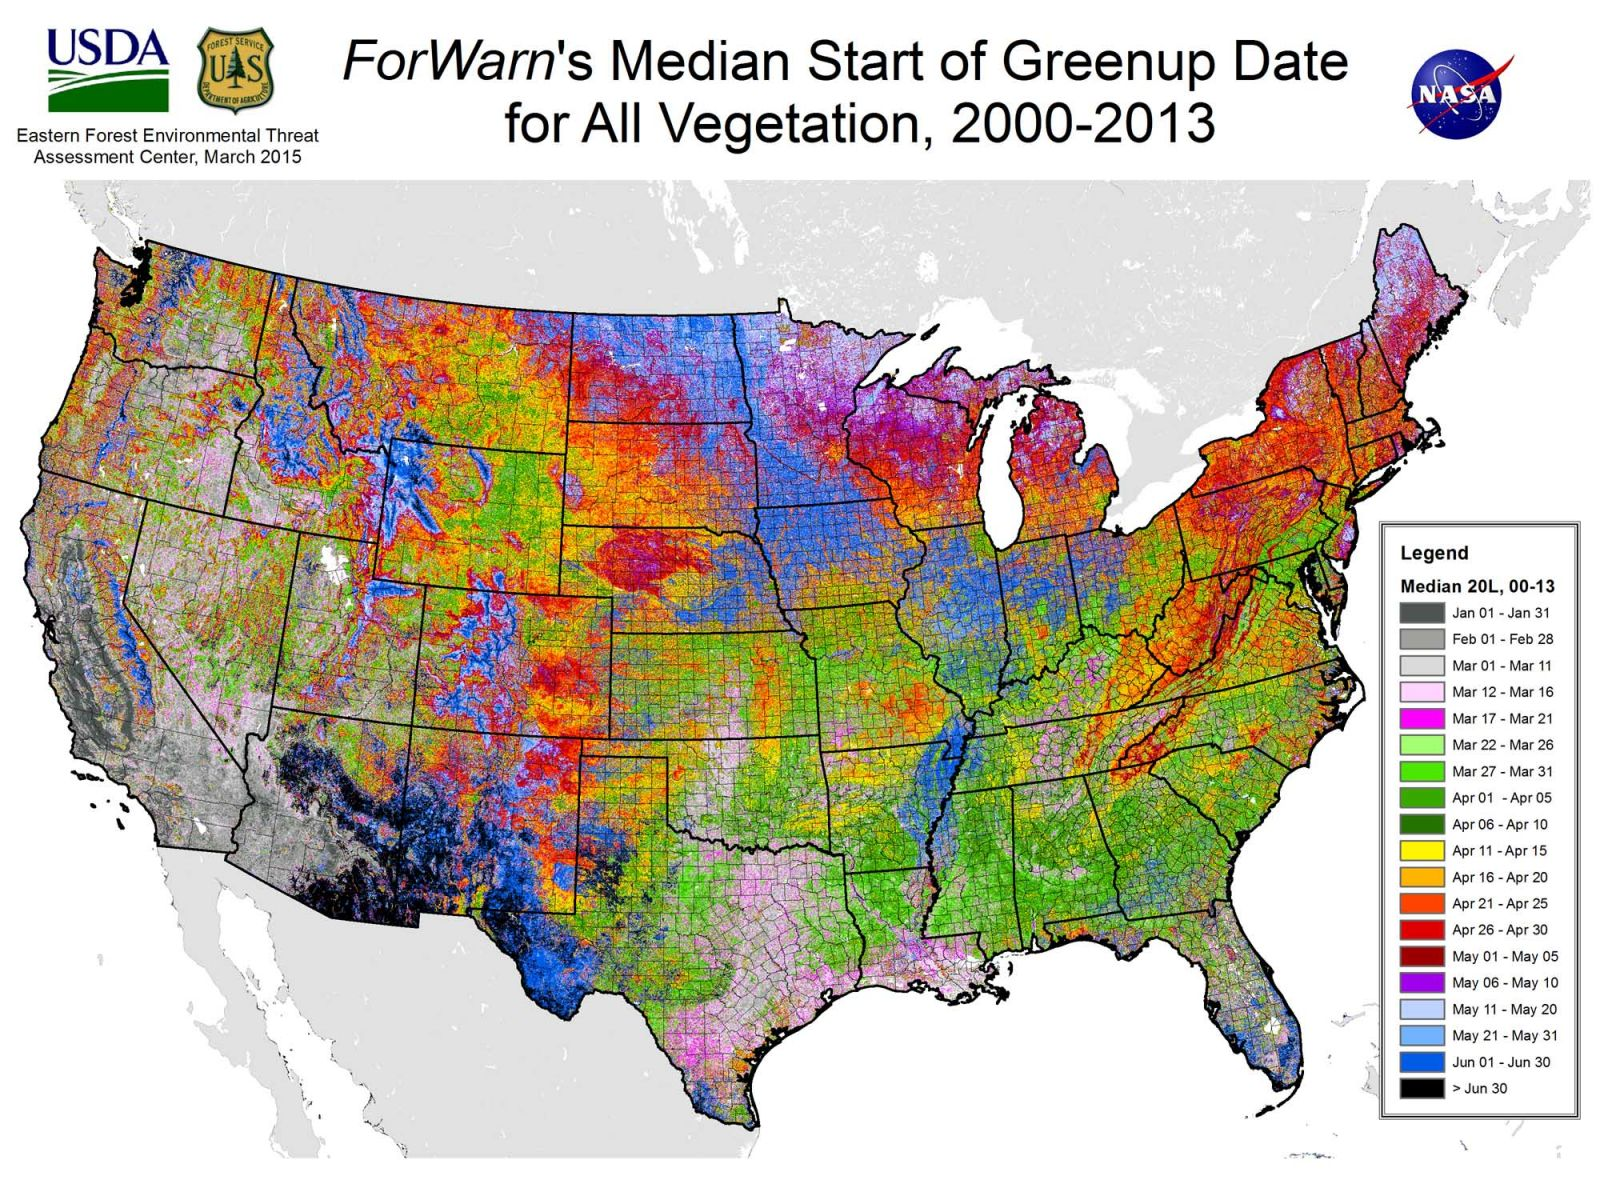 Median Start of Greenup Date for All Vegetation - Click to Enlarge